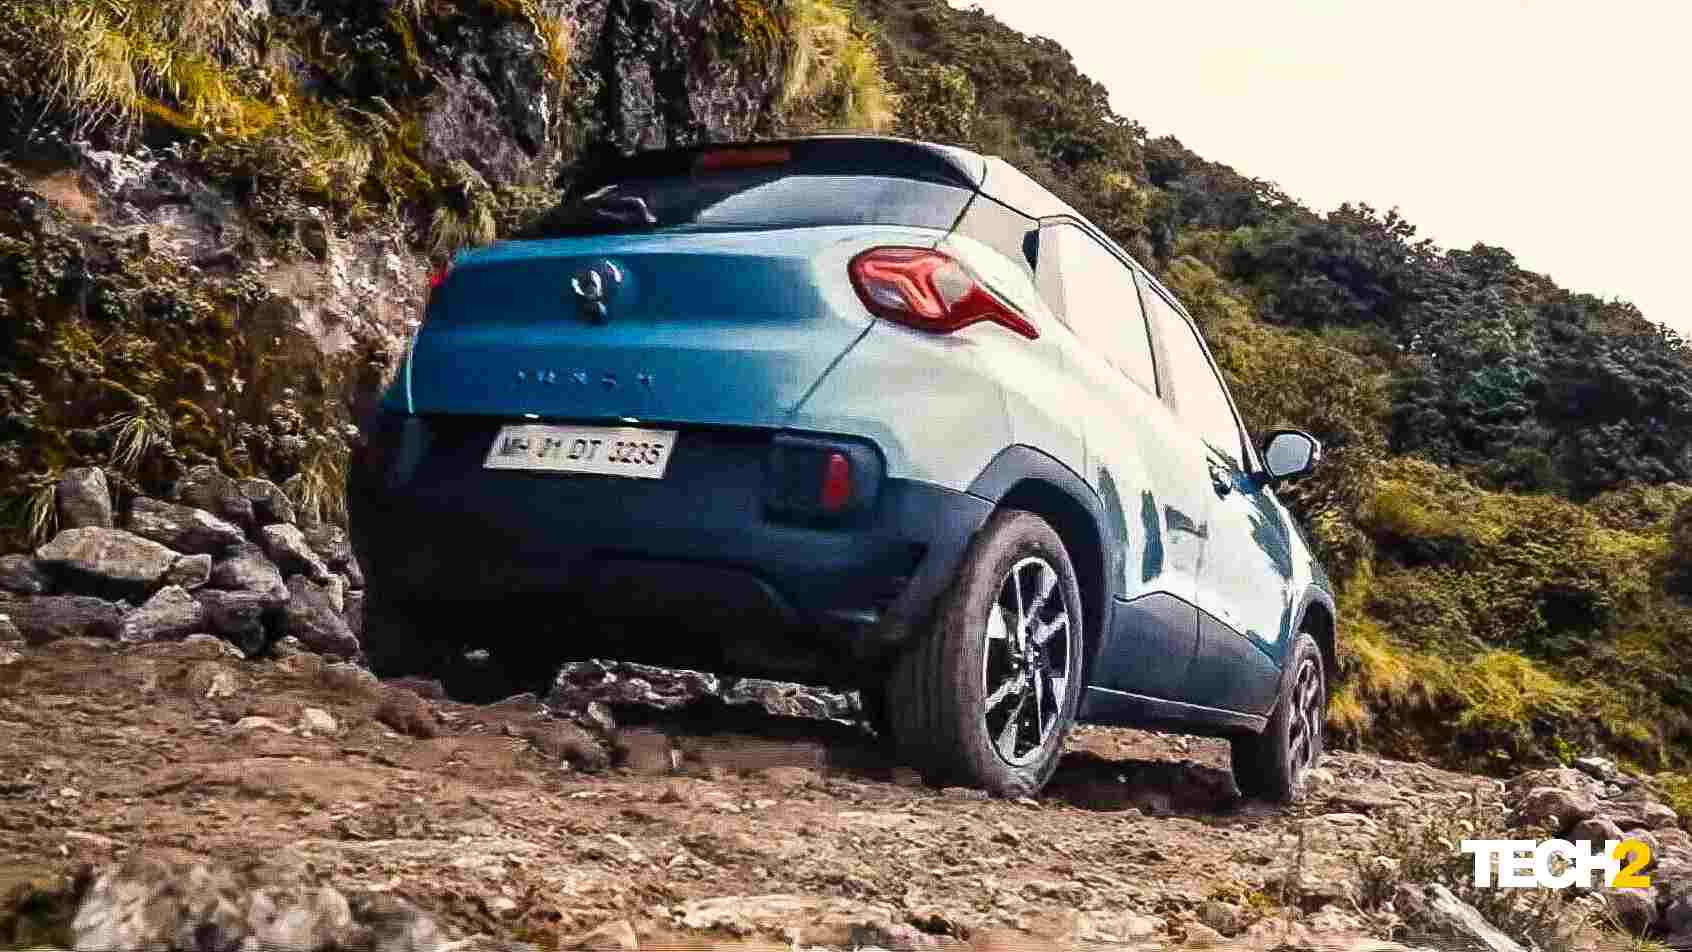 Tata expects the Punch to find plenty of takers in remote parts of the country with less than ideal road conditions. Image: Tata Motors